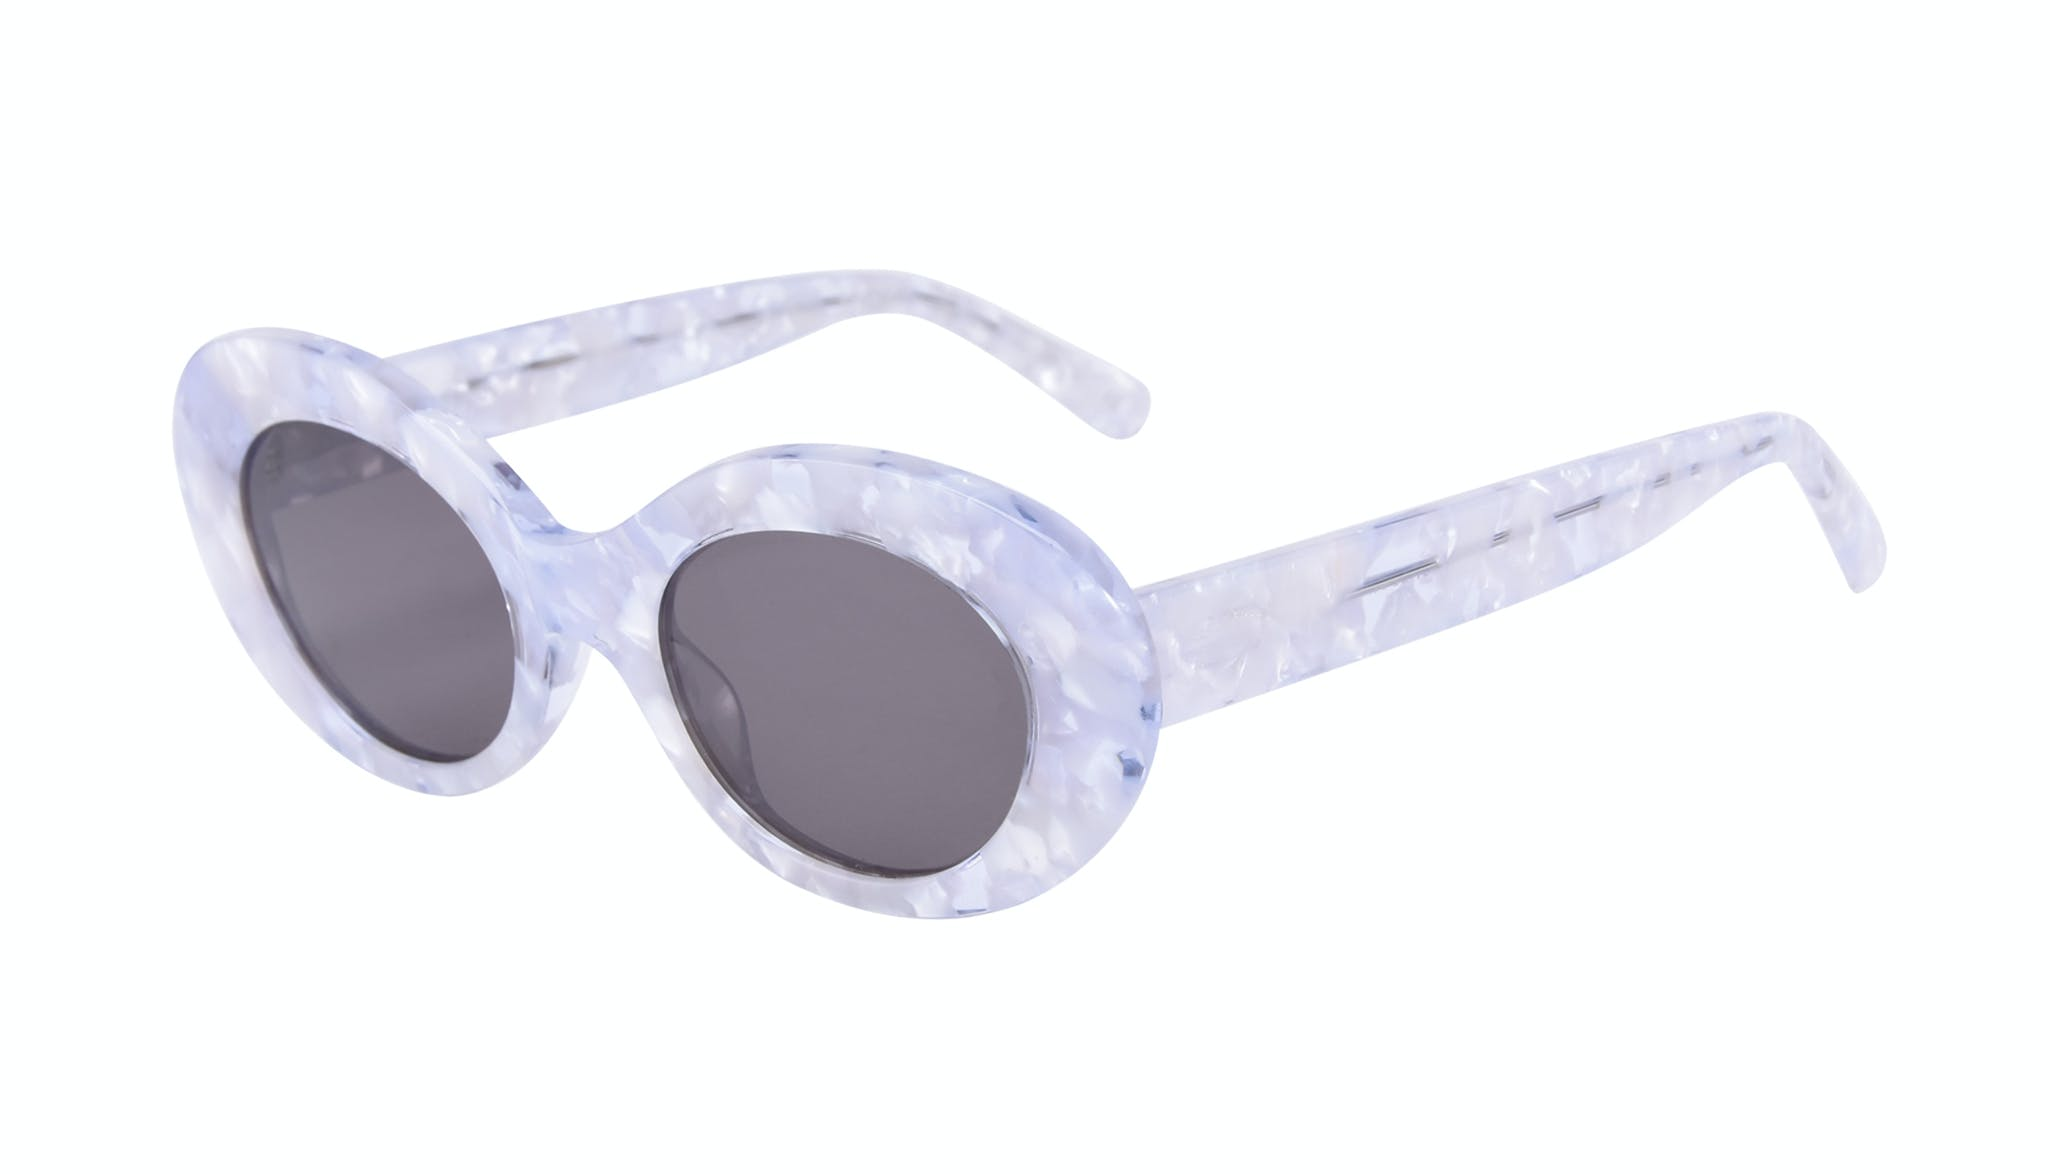 Affordable Fashion Glasses Round Sunglasses Women Galactic Moon Tilt